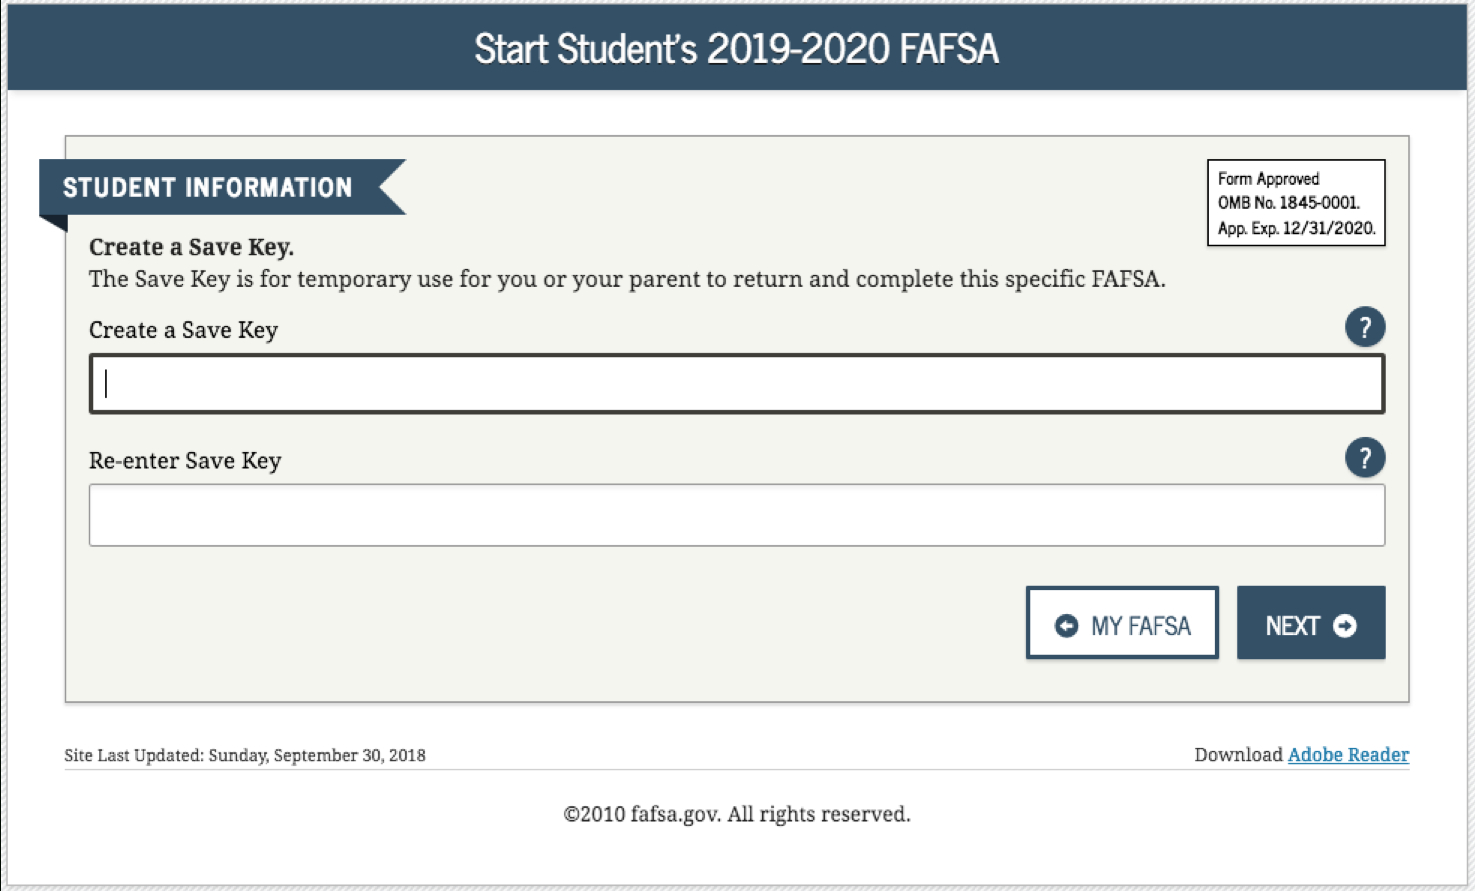 How To Complete The 2019-2020 Fafsa Application - Free Printable Fafsa Application Form